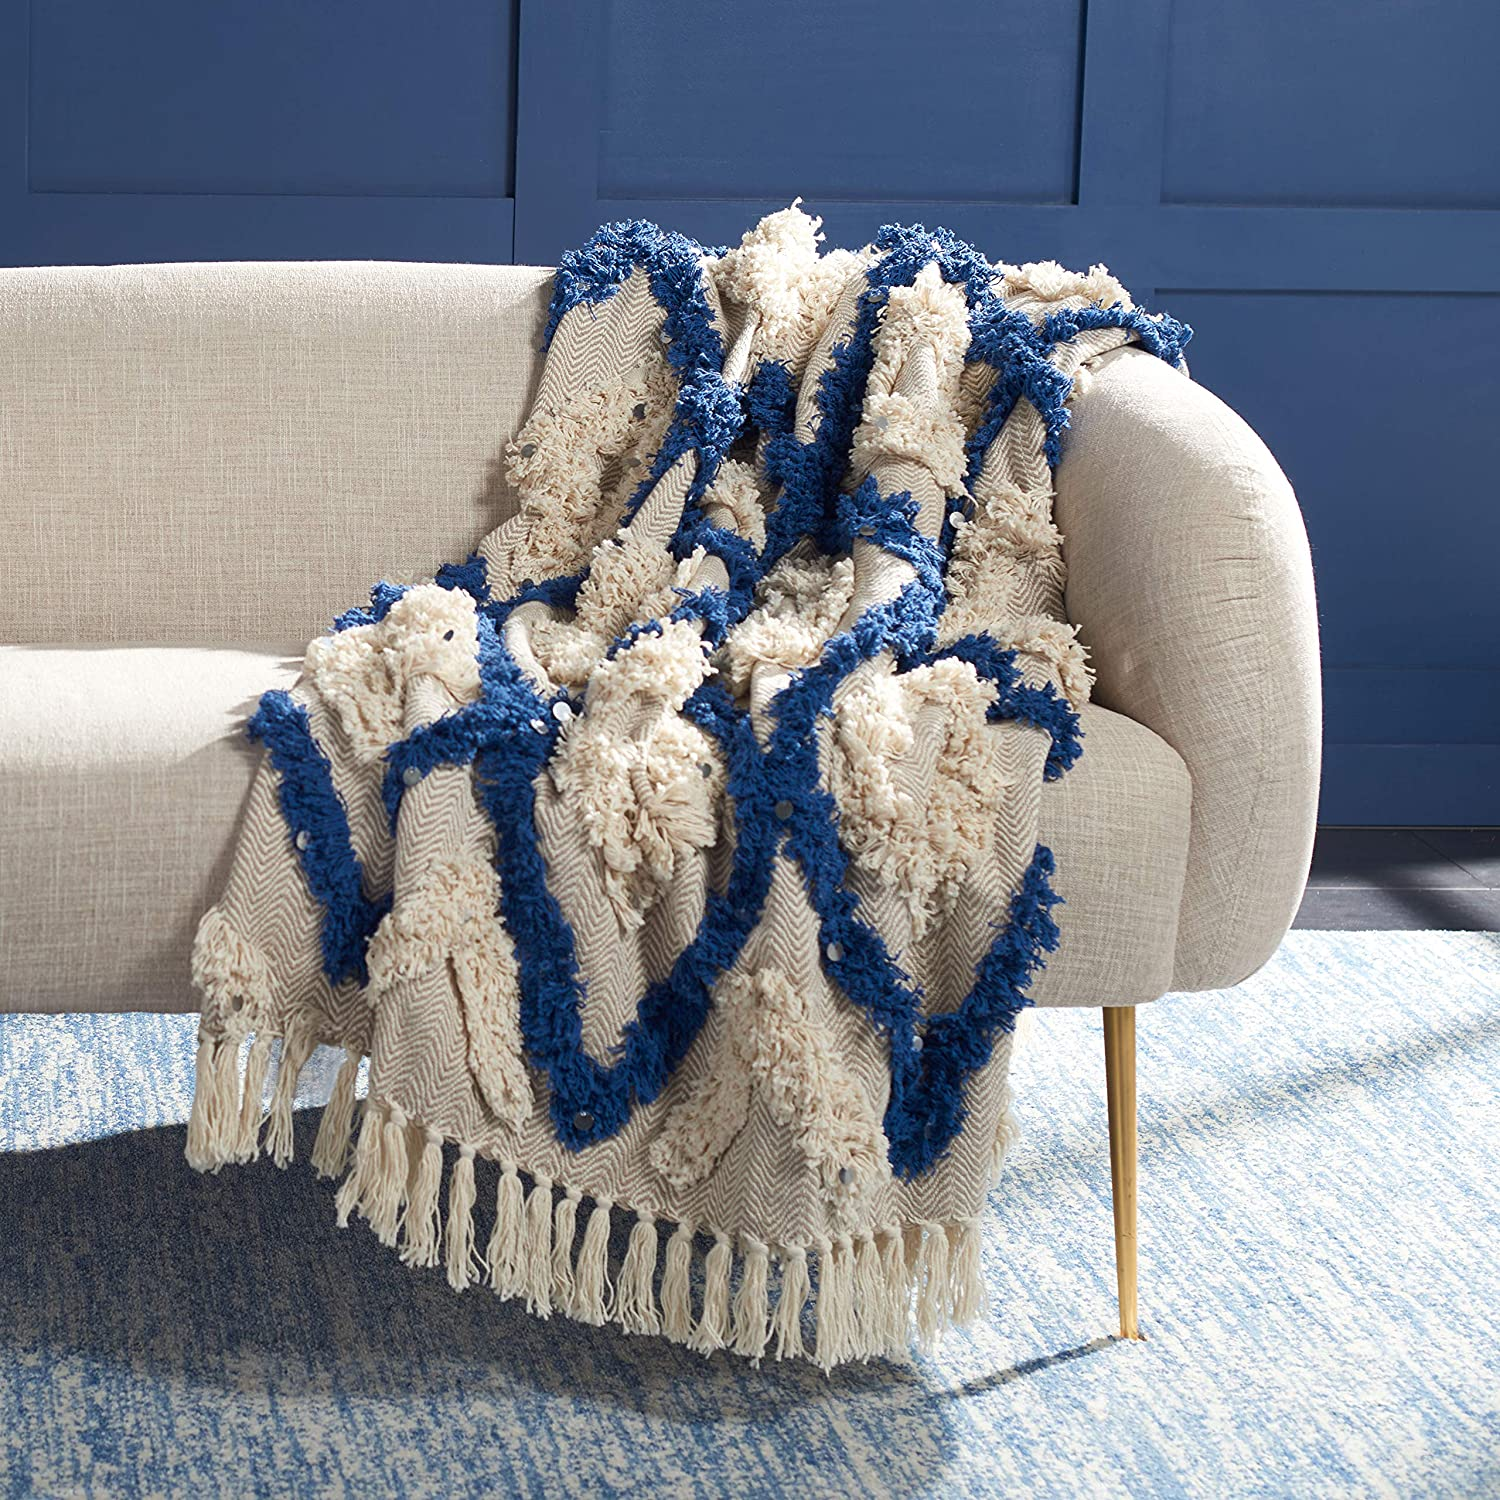 Safavieh Home Collection Lila Max 61% OFF Grace Boho and Fringe Navy Ranking TOP16 5 Beige